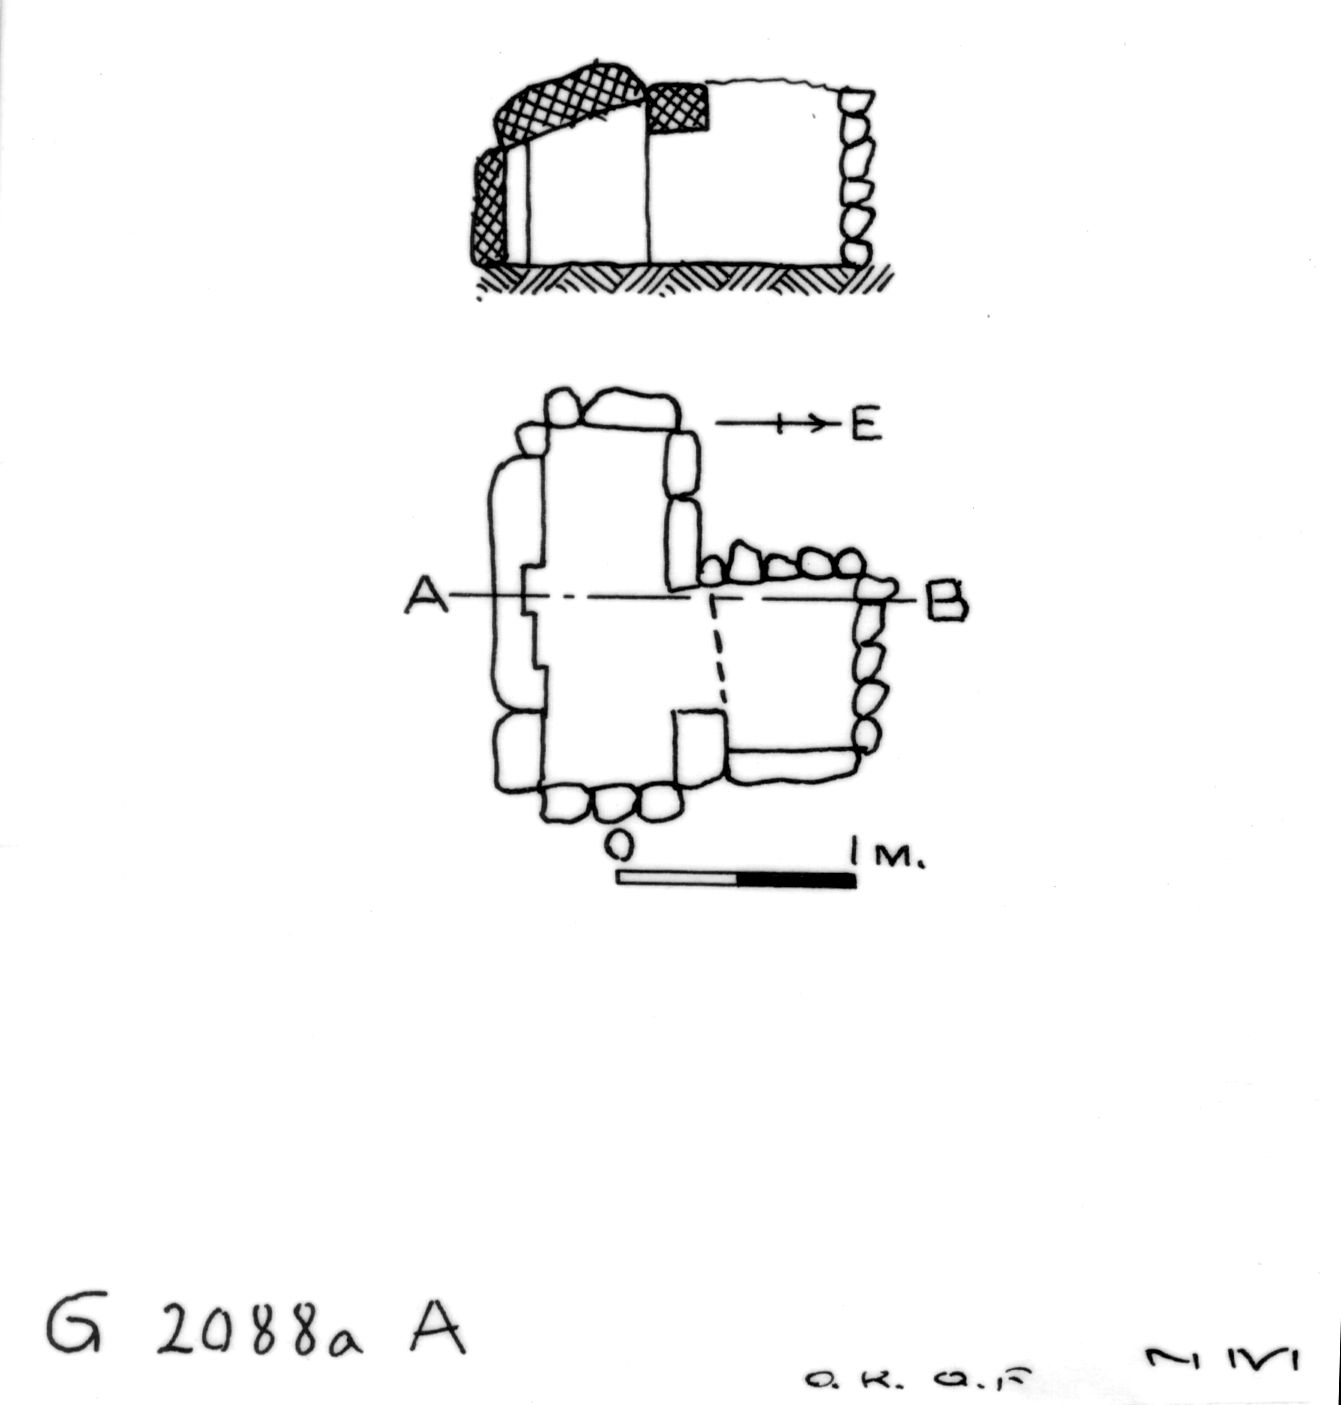 Maps and plans: G 2088a, Shaft A